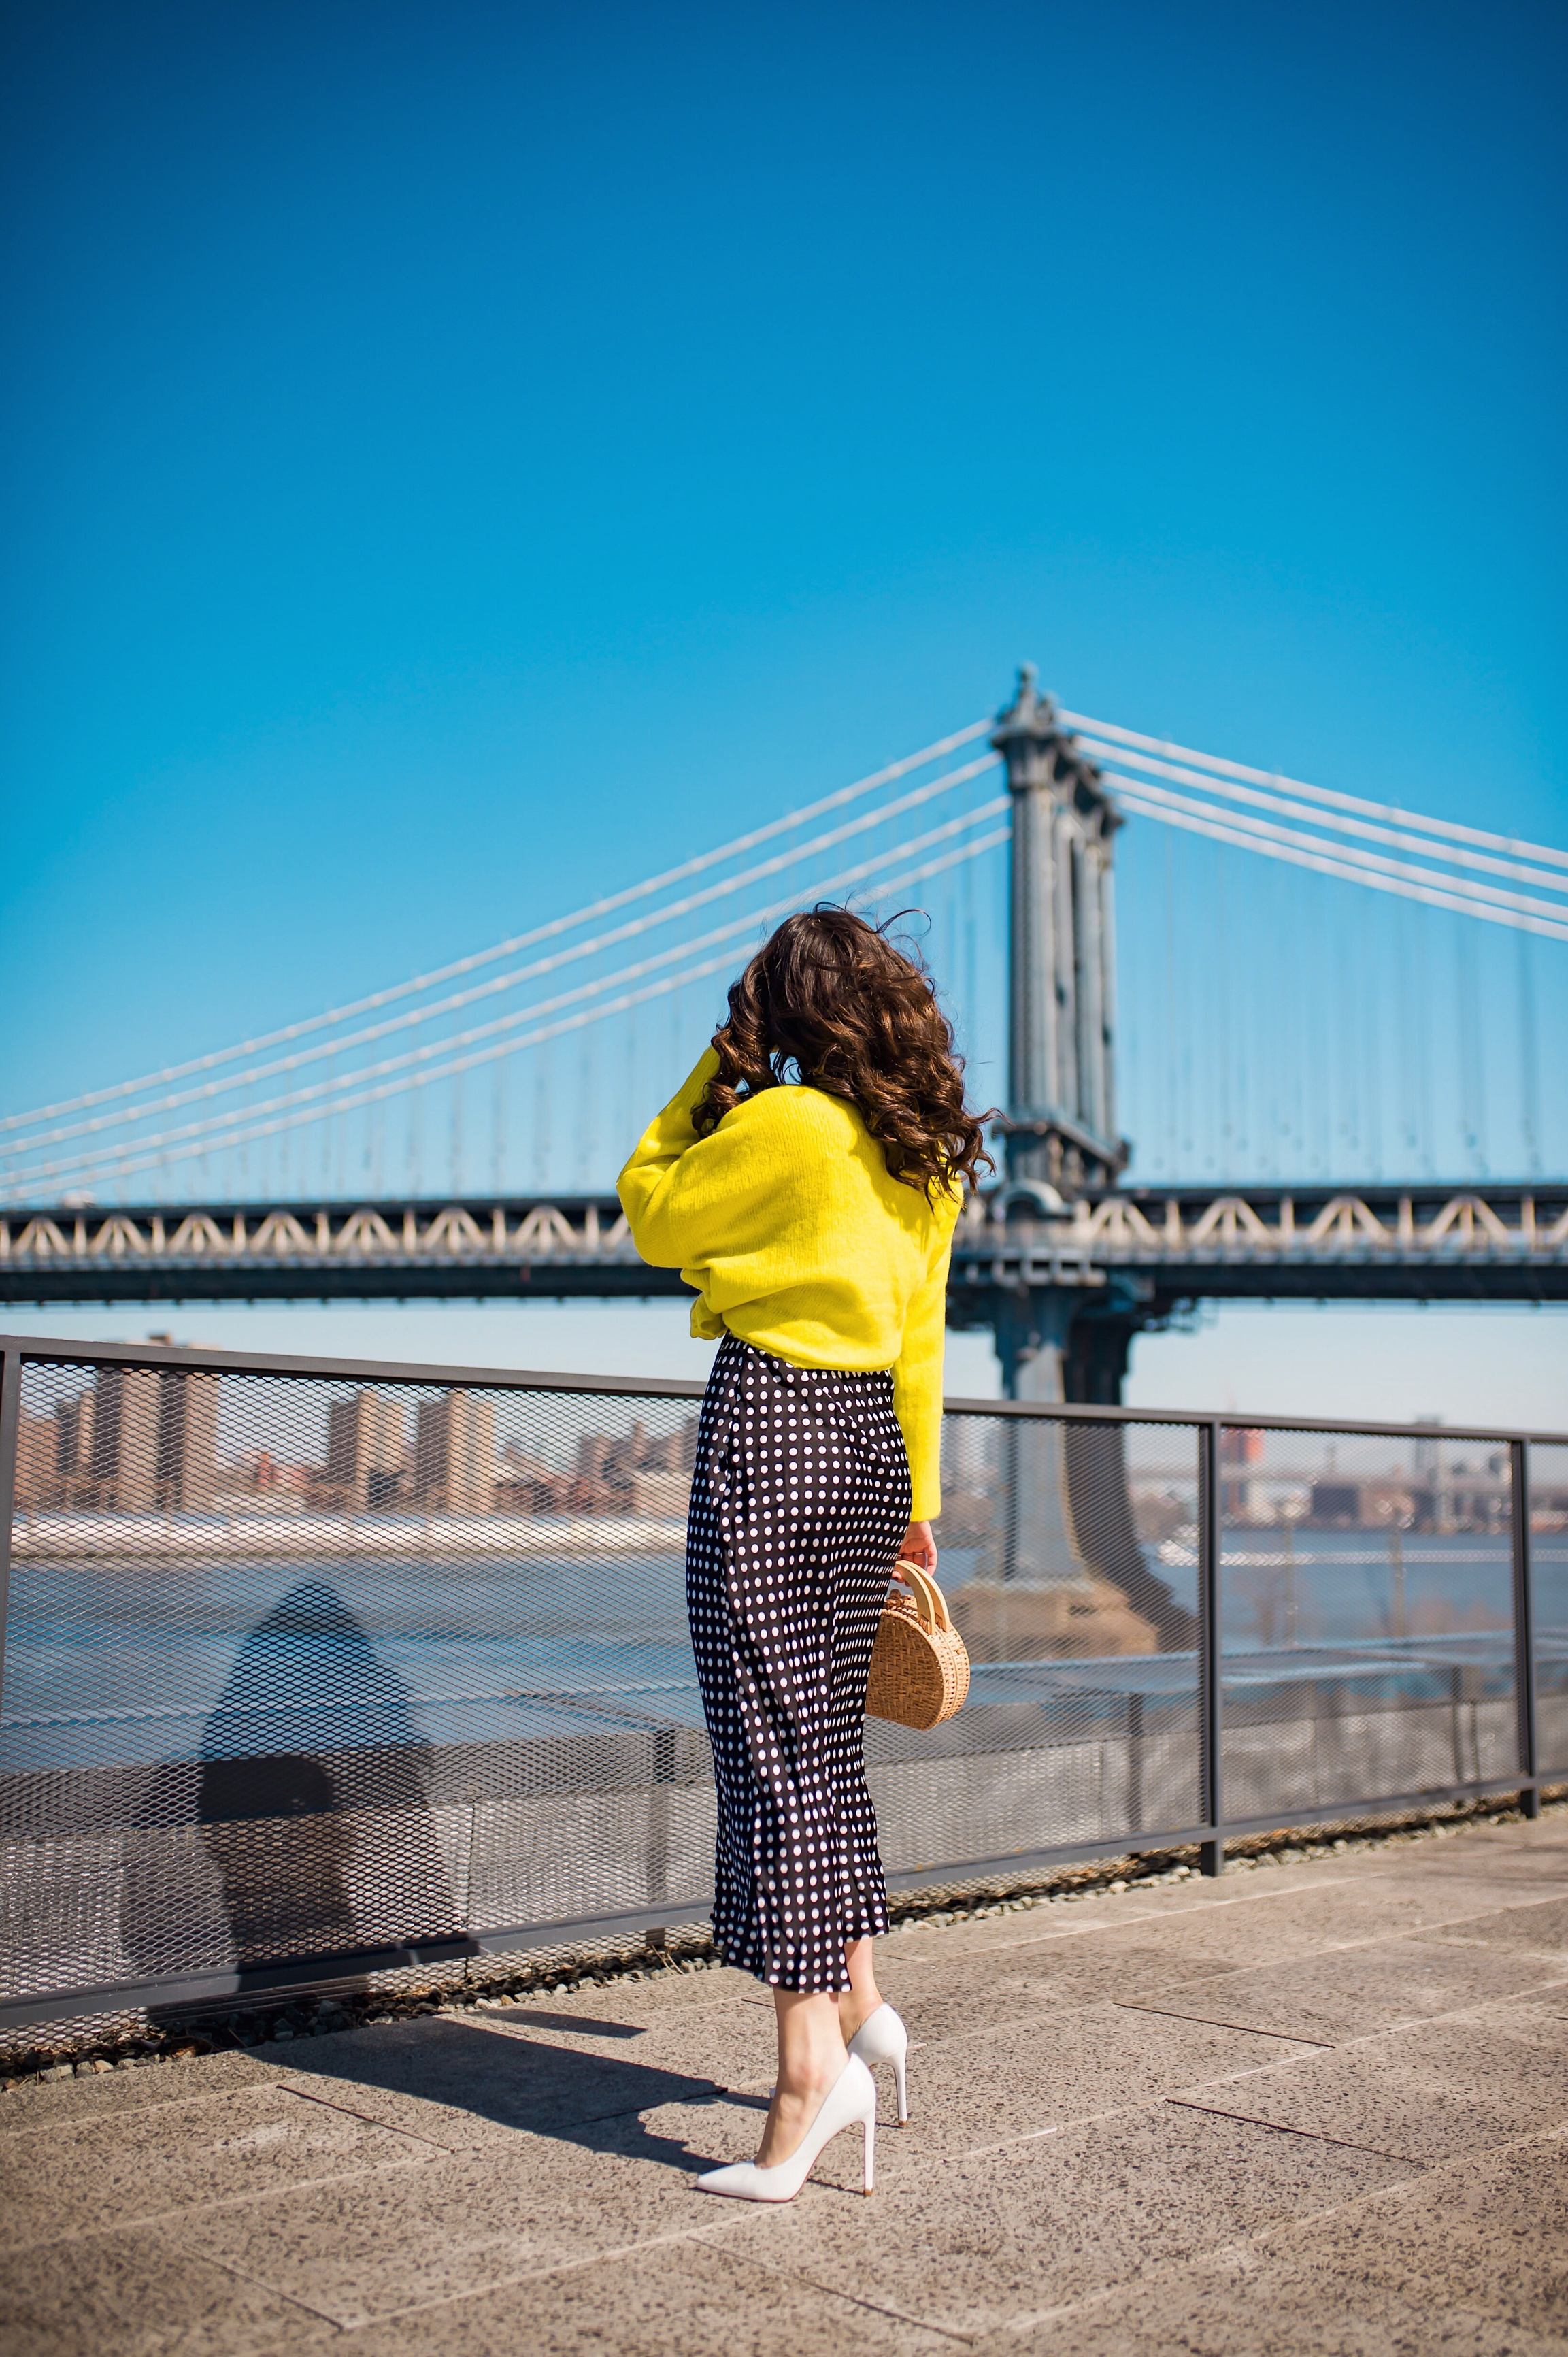 How I Wound Up With Boring White Dishes Navy Polka Dot Dress Neon Yellow Knotted Sweater Esther Santer Fashion Blog NYC Street Style Blogger Outfit OOTD Trendy Shopping Girl What How To Wear White Heels Dumbo Brooklyn Bridge Photoshoot Laurel Creative.JPG